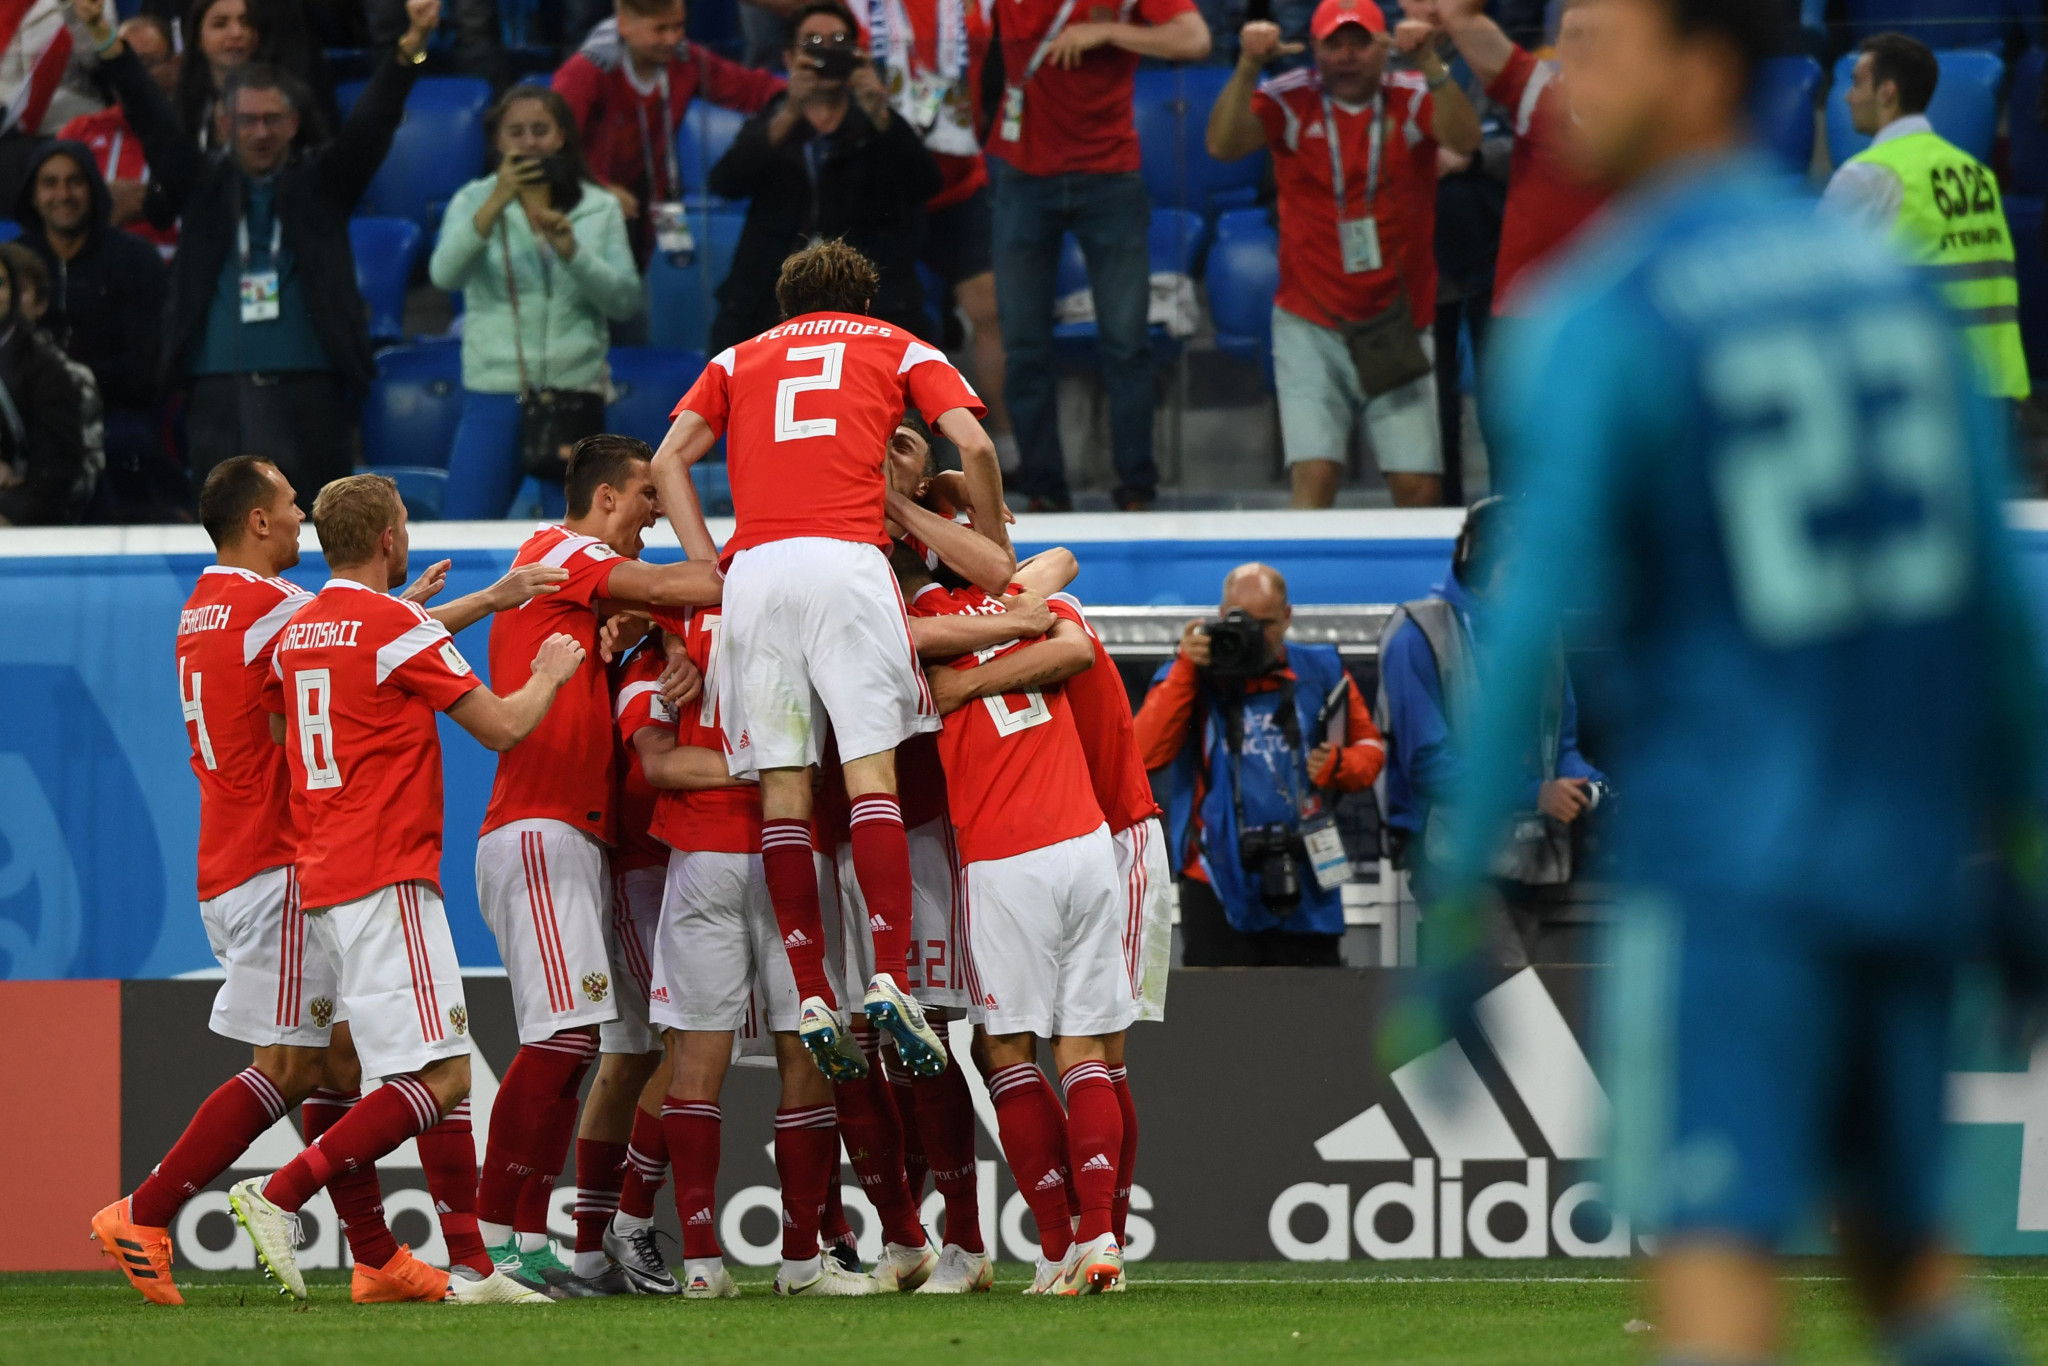 More Russian success and Japanese surprise at FIFA World Cup